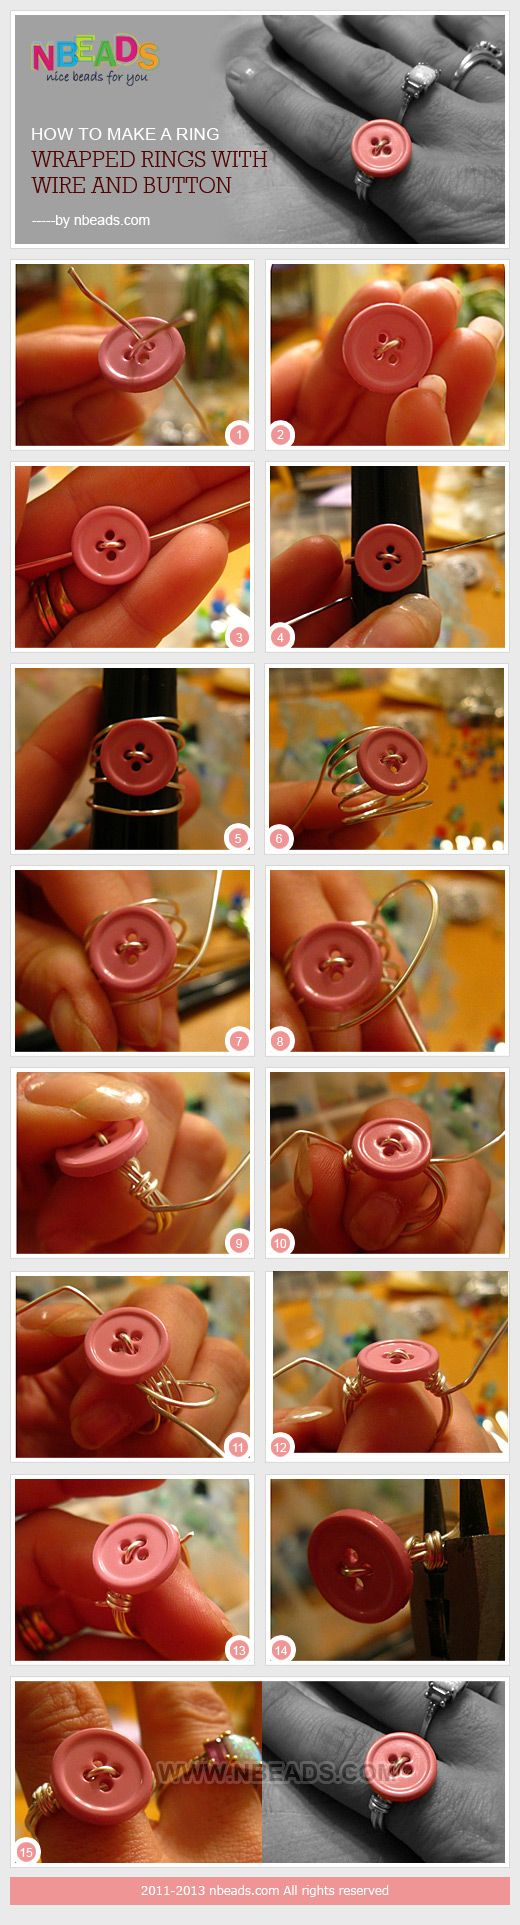 how to make a ring - wrapped rings with wire and button (I'd wrap through all the holes in the button)